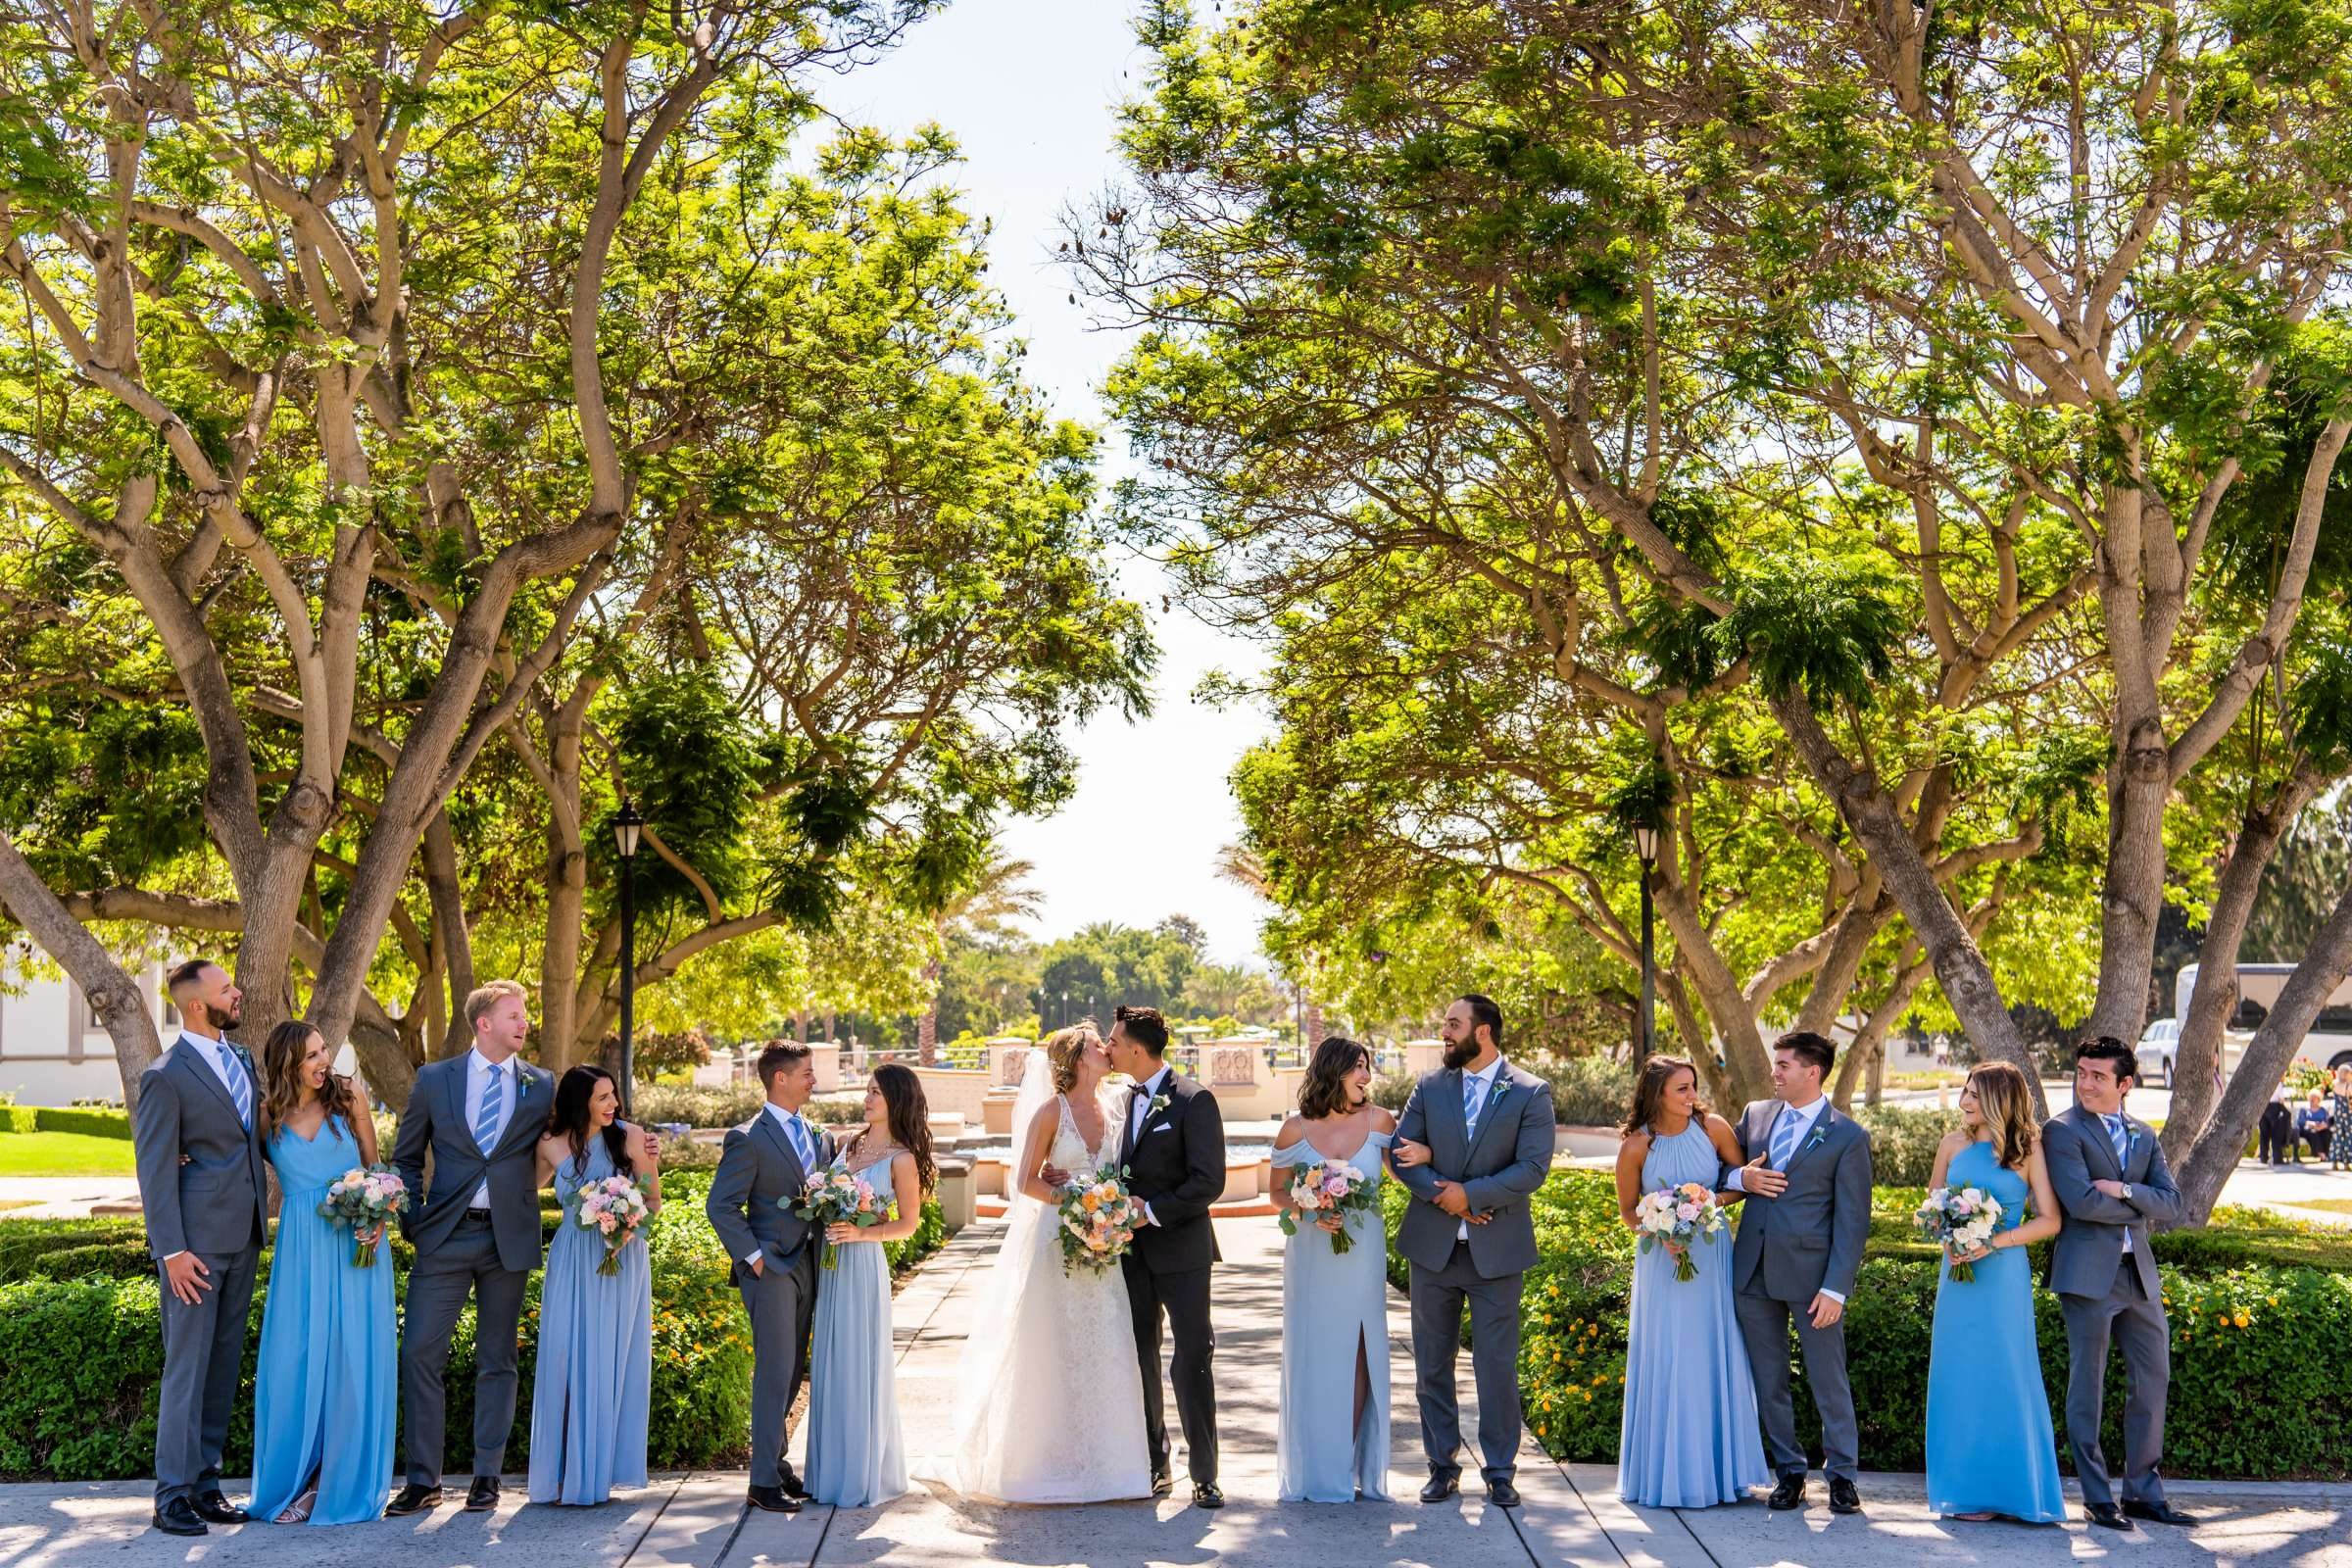 The Prado Wedding coordinated by Bliss Events, Sara and Marvin Wedding Photo #559557 by True Photography